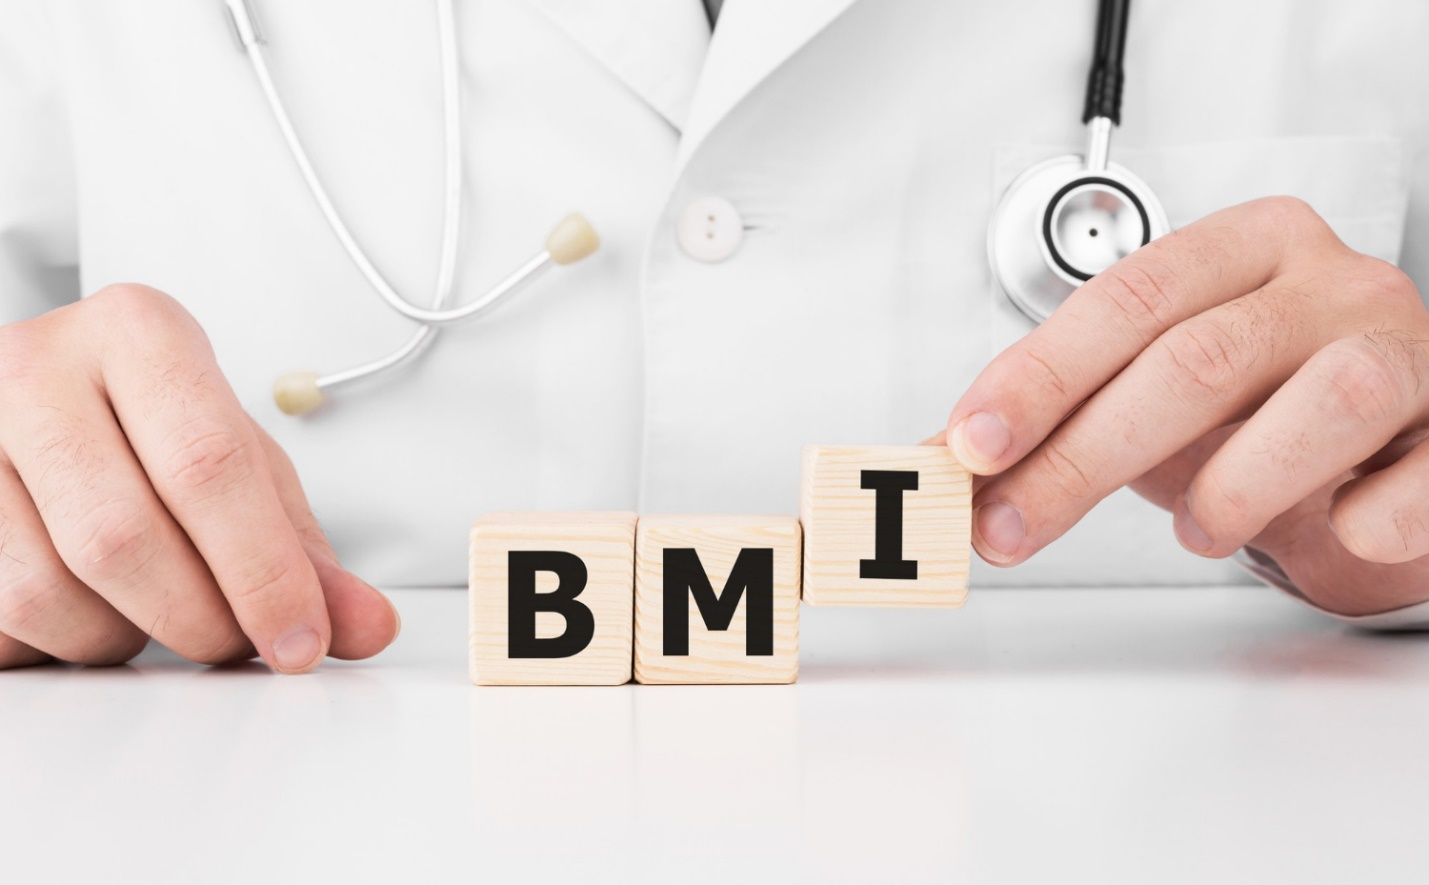 C:\Users\Dell\Downloads\doctor-holds-wooden-cubes-his-hands-with-text-bmi.jpg